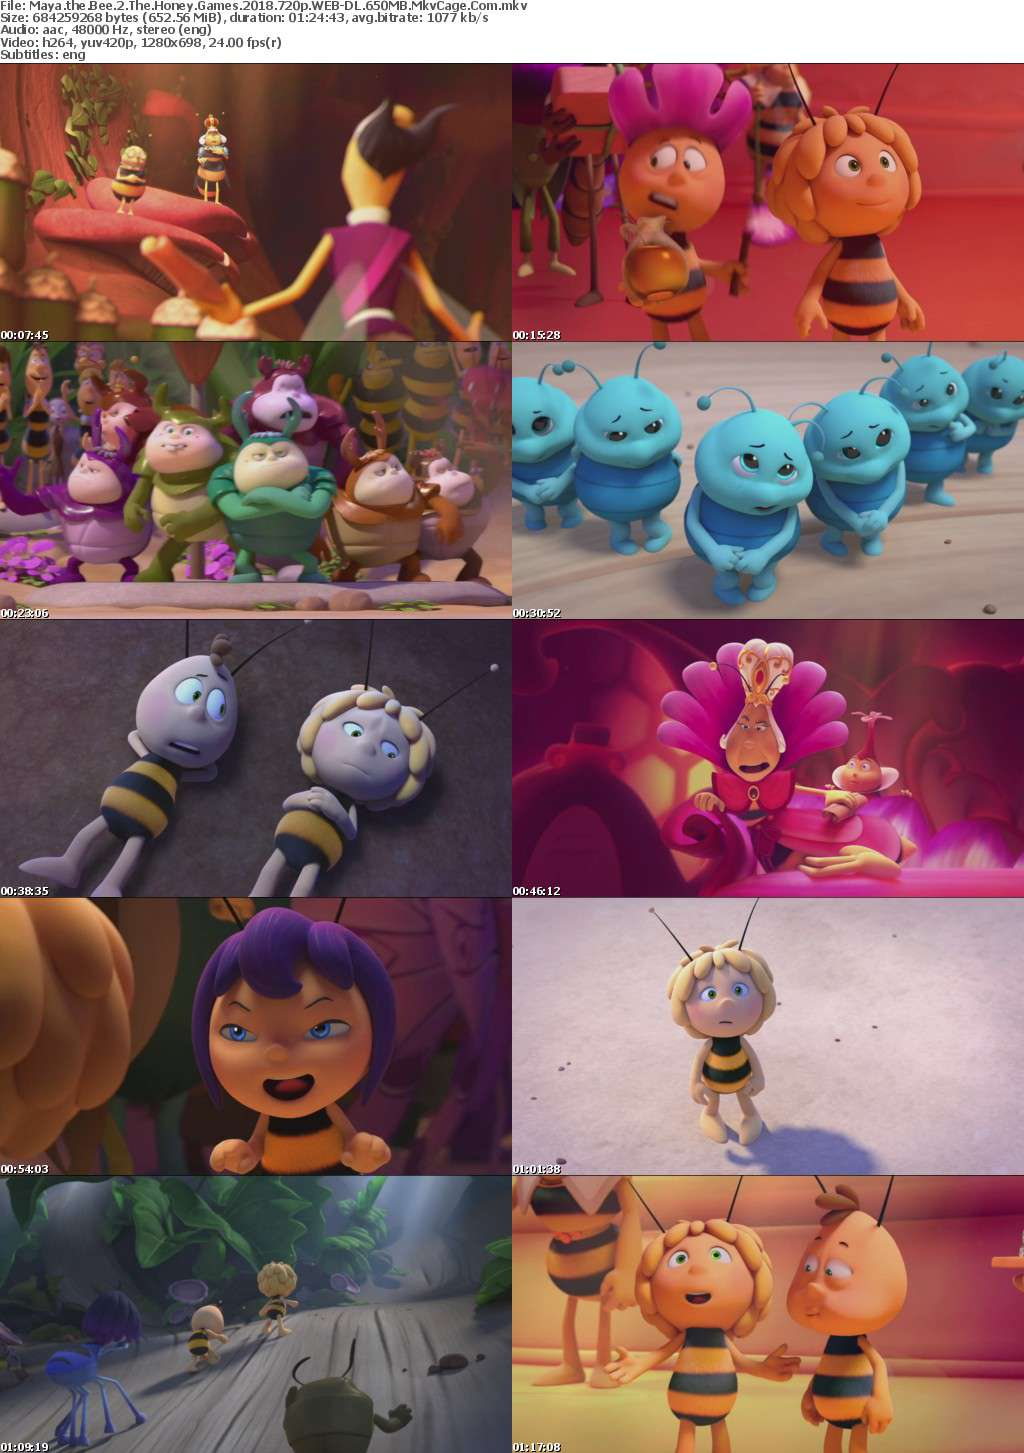 Maya the Bee 2 The Honey Games 2018 720p WEB-DL 650MB MkvCage